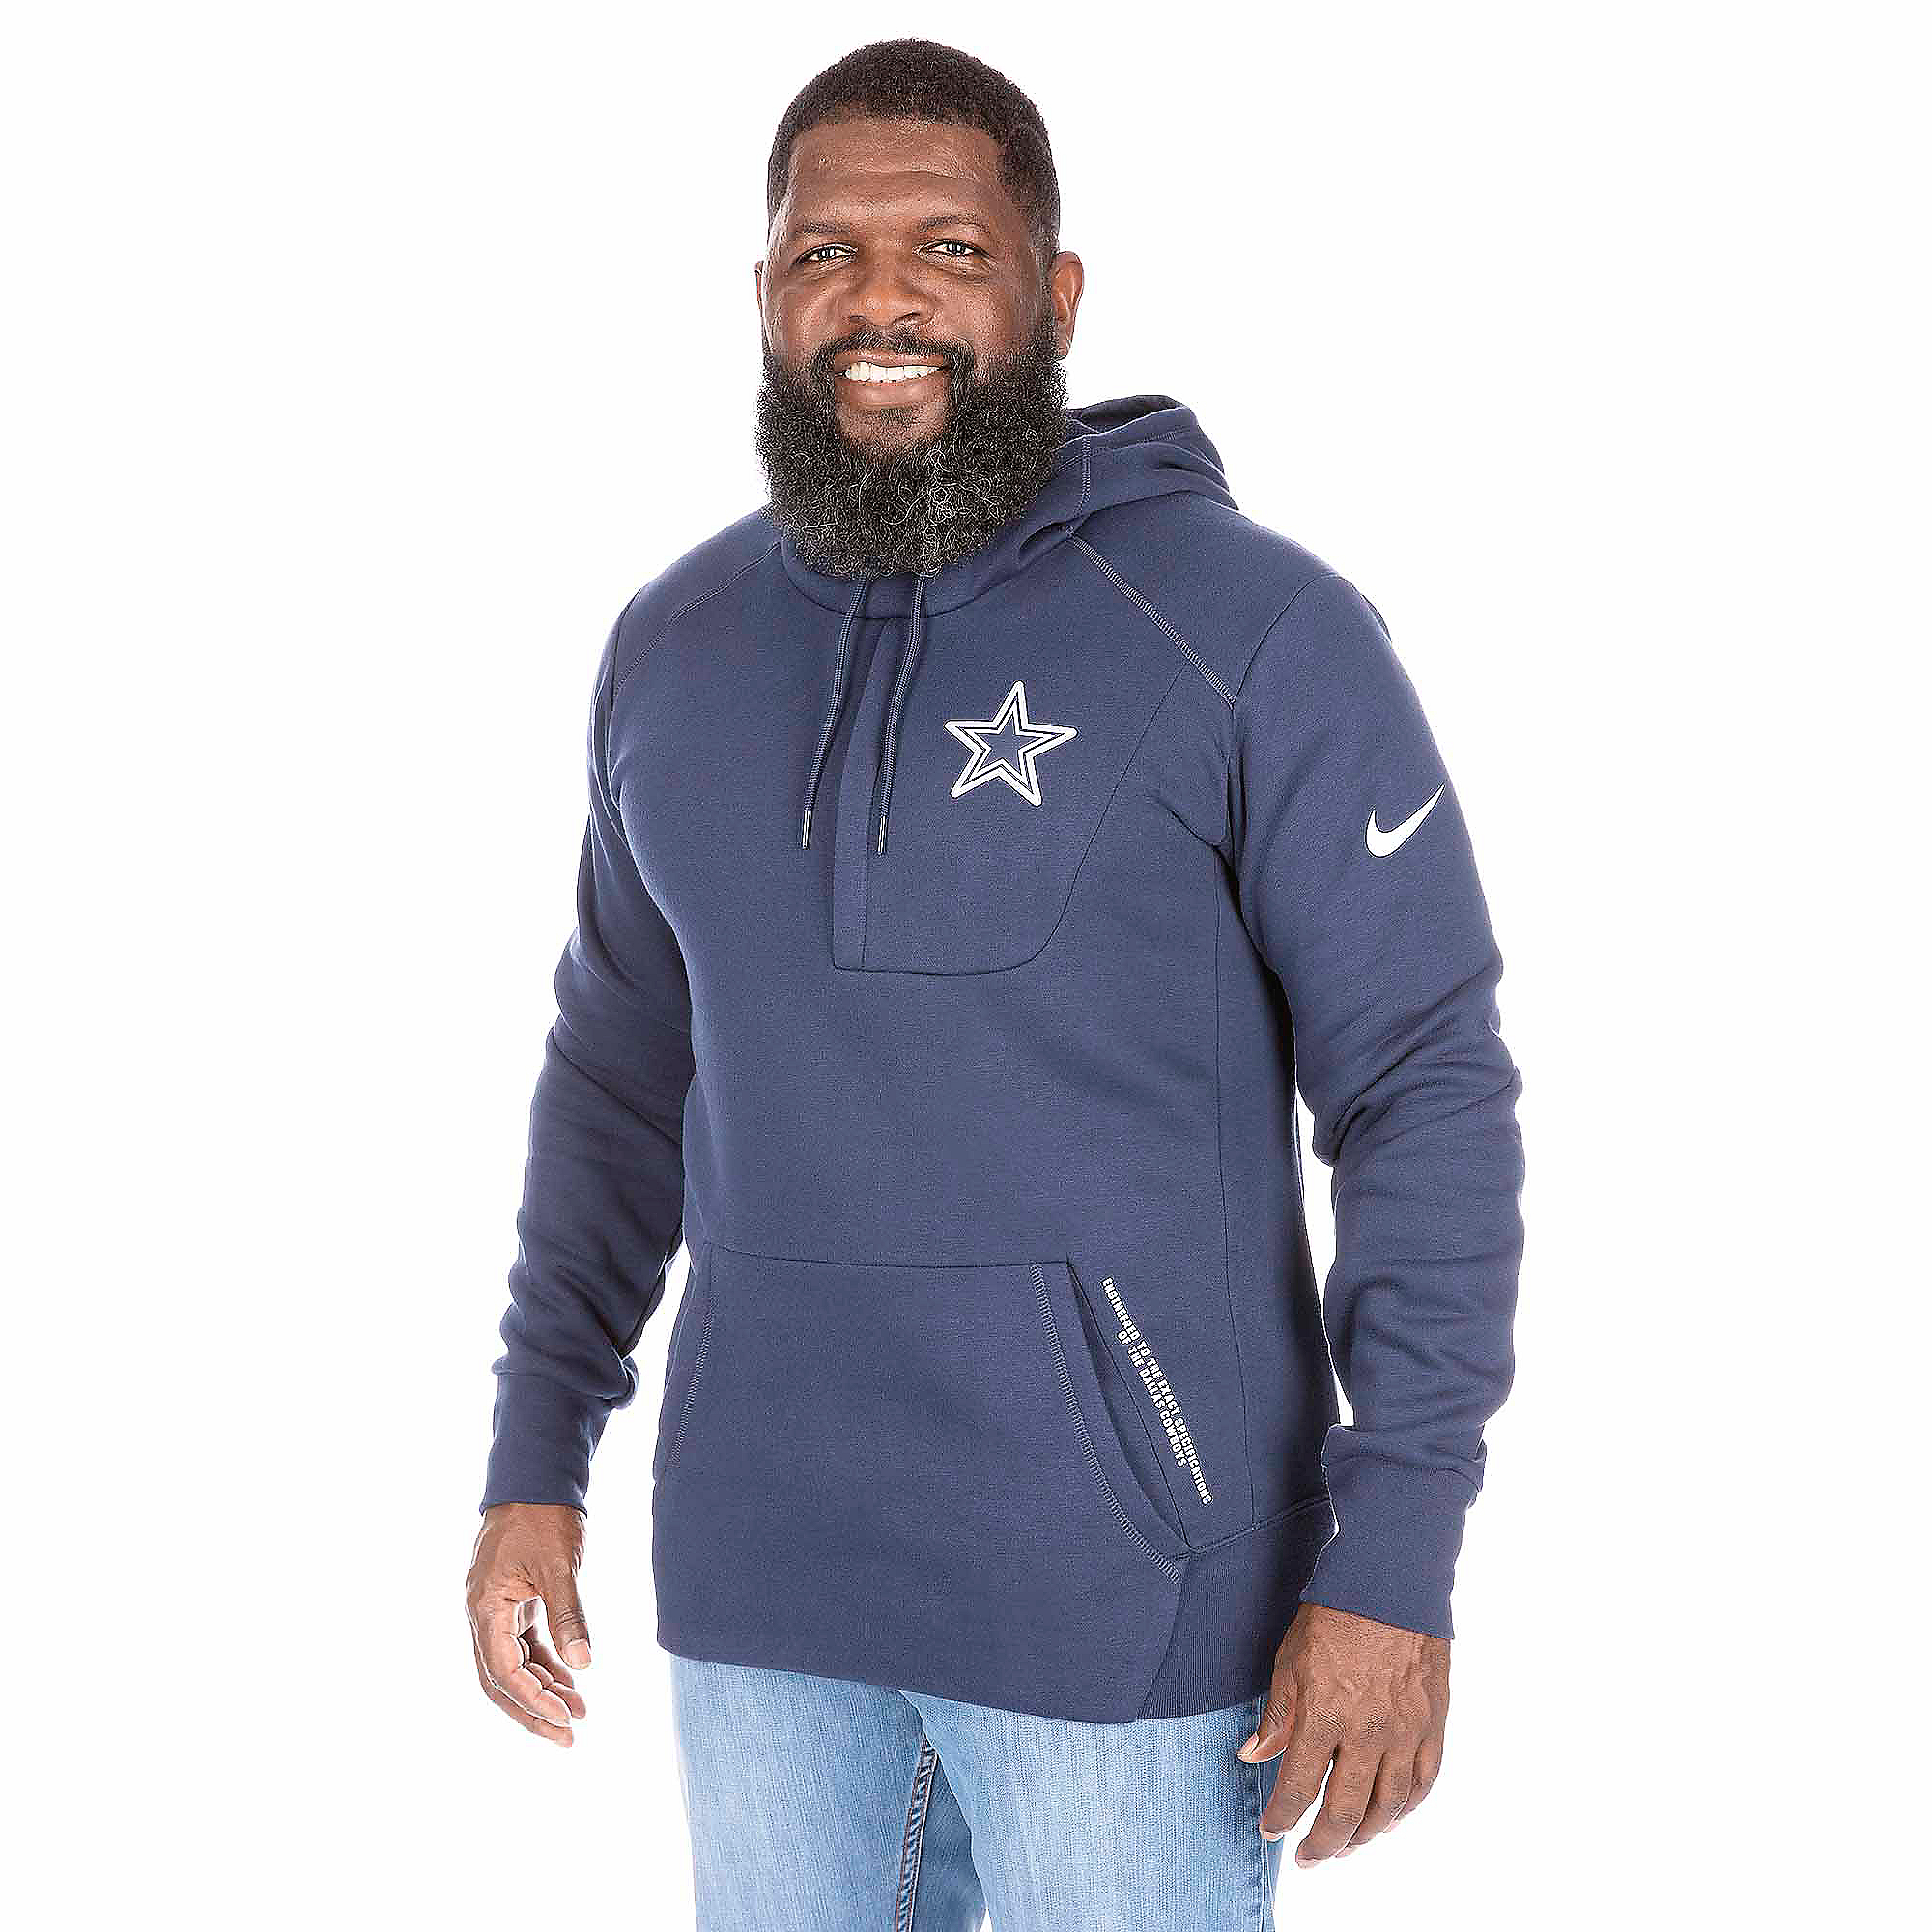 info for 6d458 1301d Dallas Cowboys Nike Fly Fleece Pullover Hoody | Dallas Cowboys Pro Shop